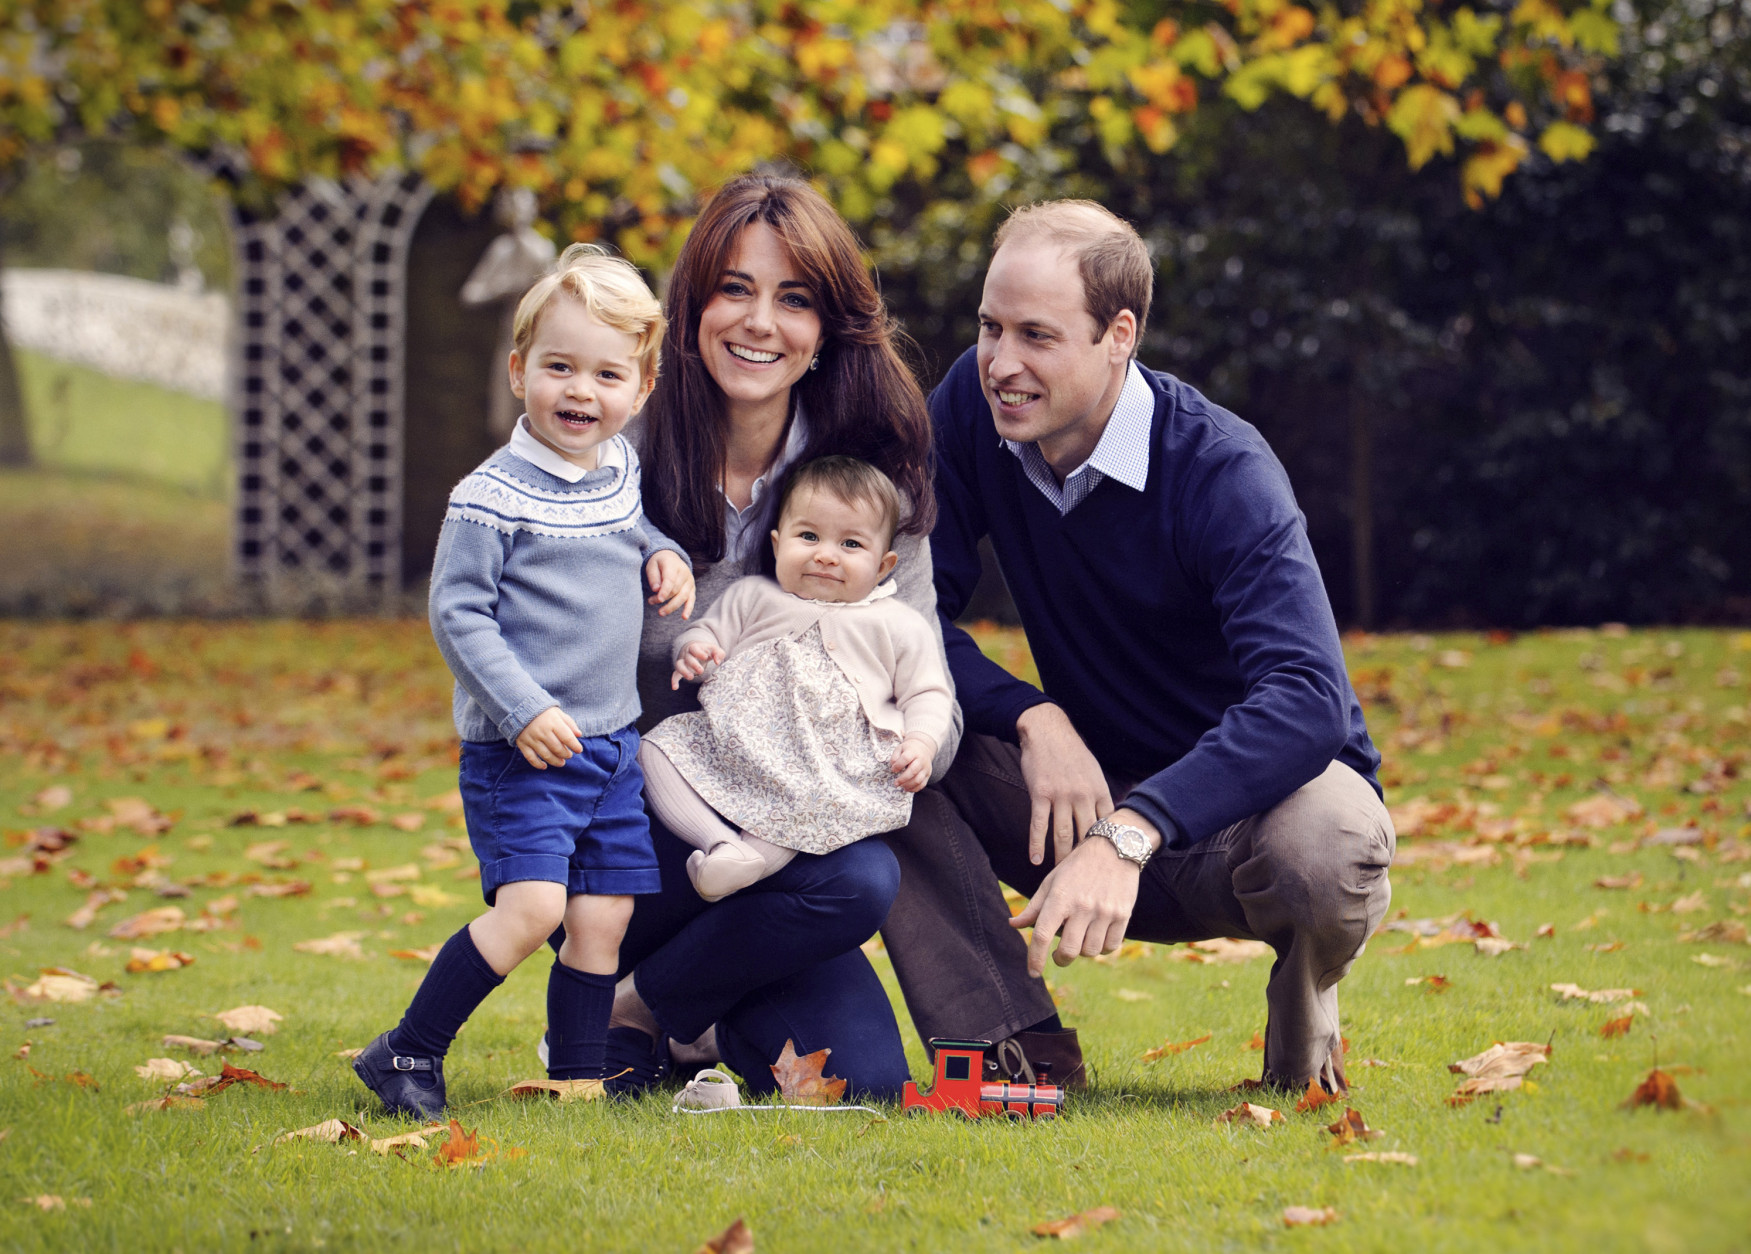 This photo released by Kensington Palace on Friday Dec. 18, 2015 shows The Duke and Duchess of Cambridge with their two children, Prince George and Princess Charlotte, in a photograph taken late October 2015 at Kensington Palace in London. (Chris Jelf via AP) MANDATORY CREDIT